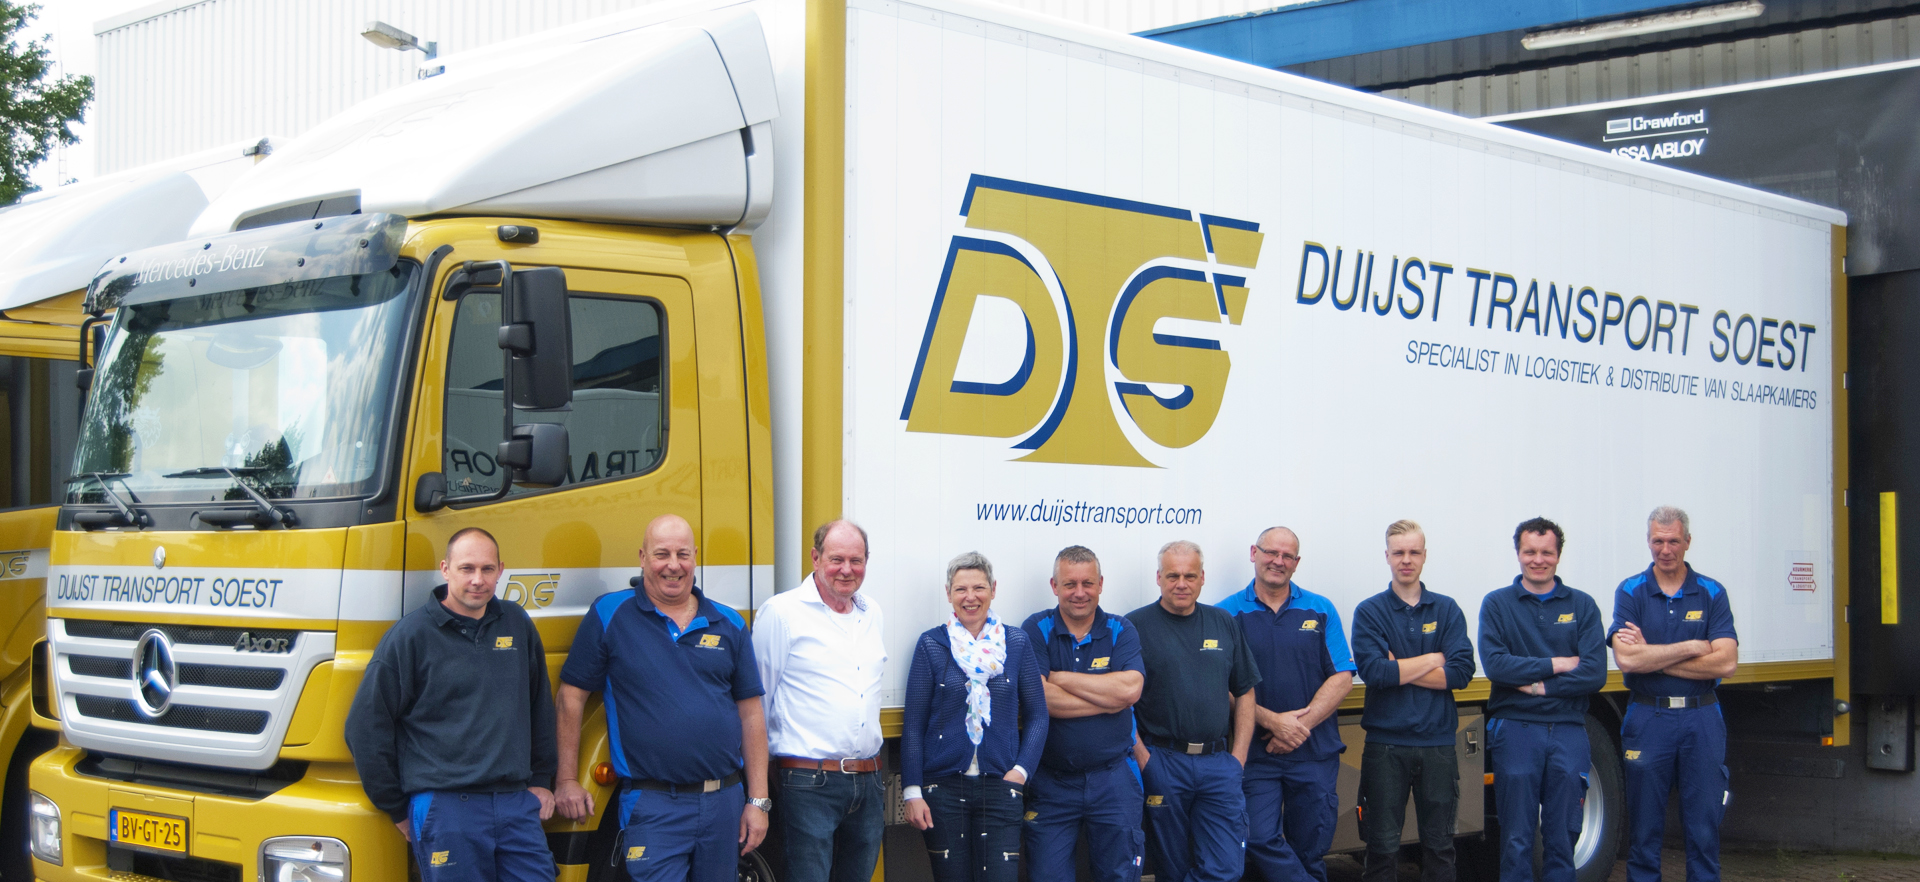 Team Duijst Transport